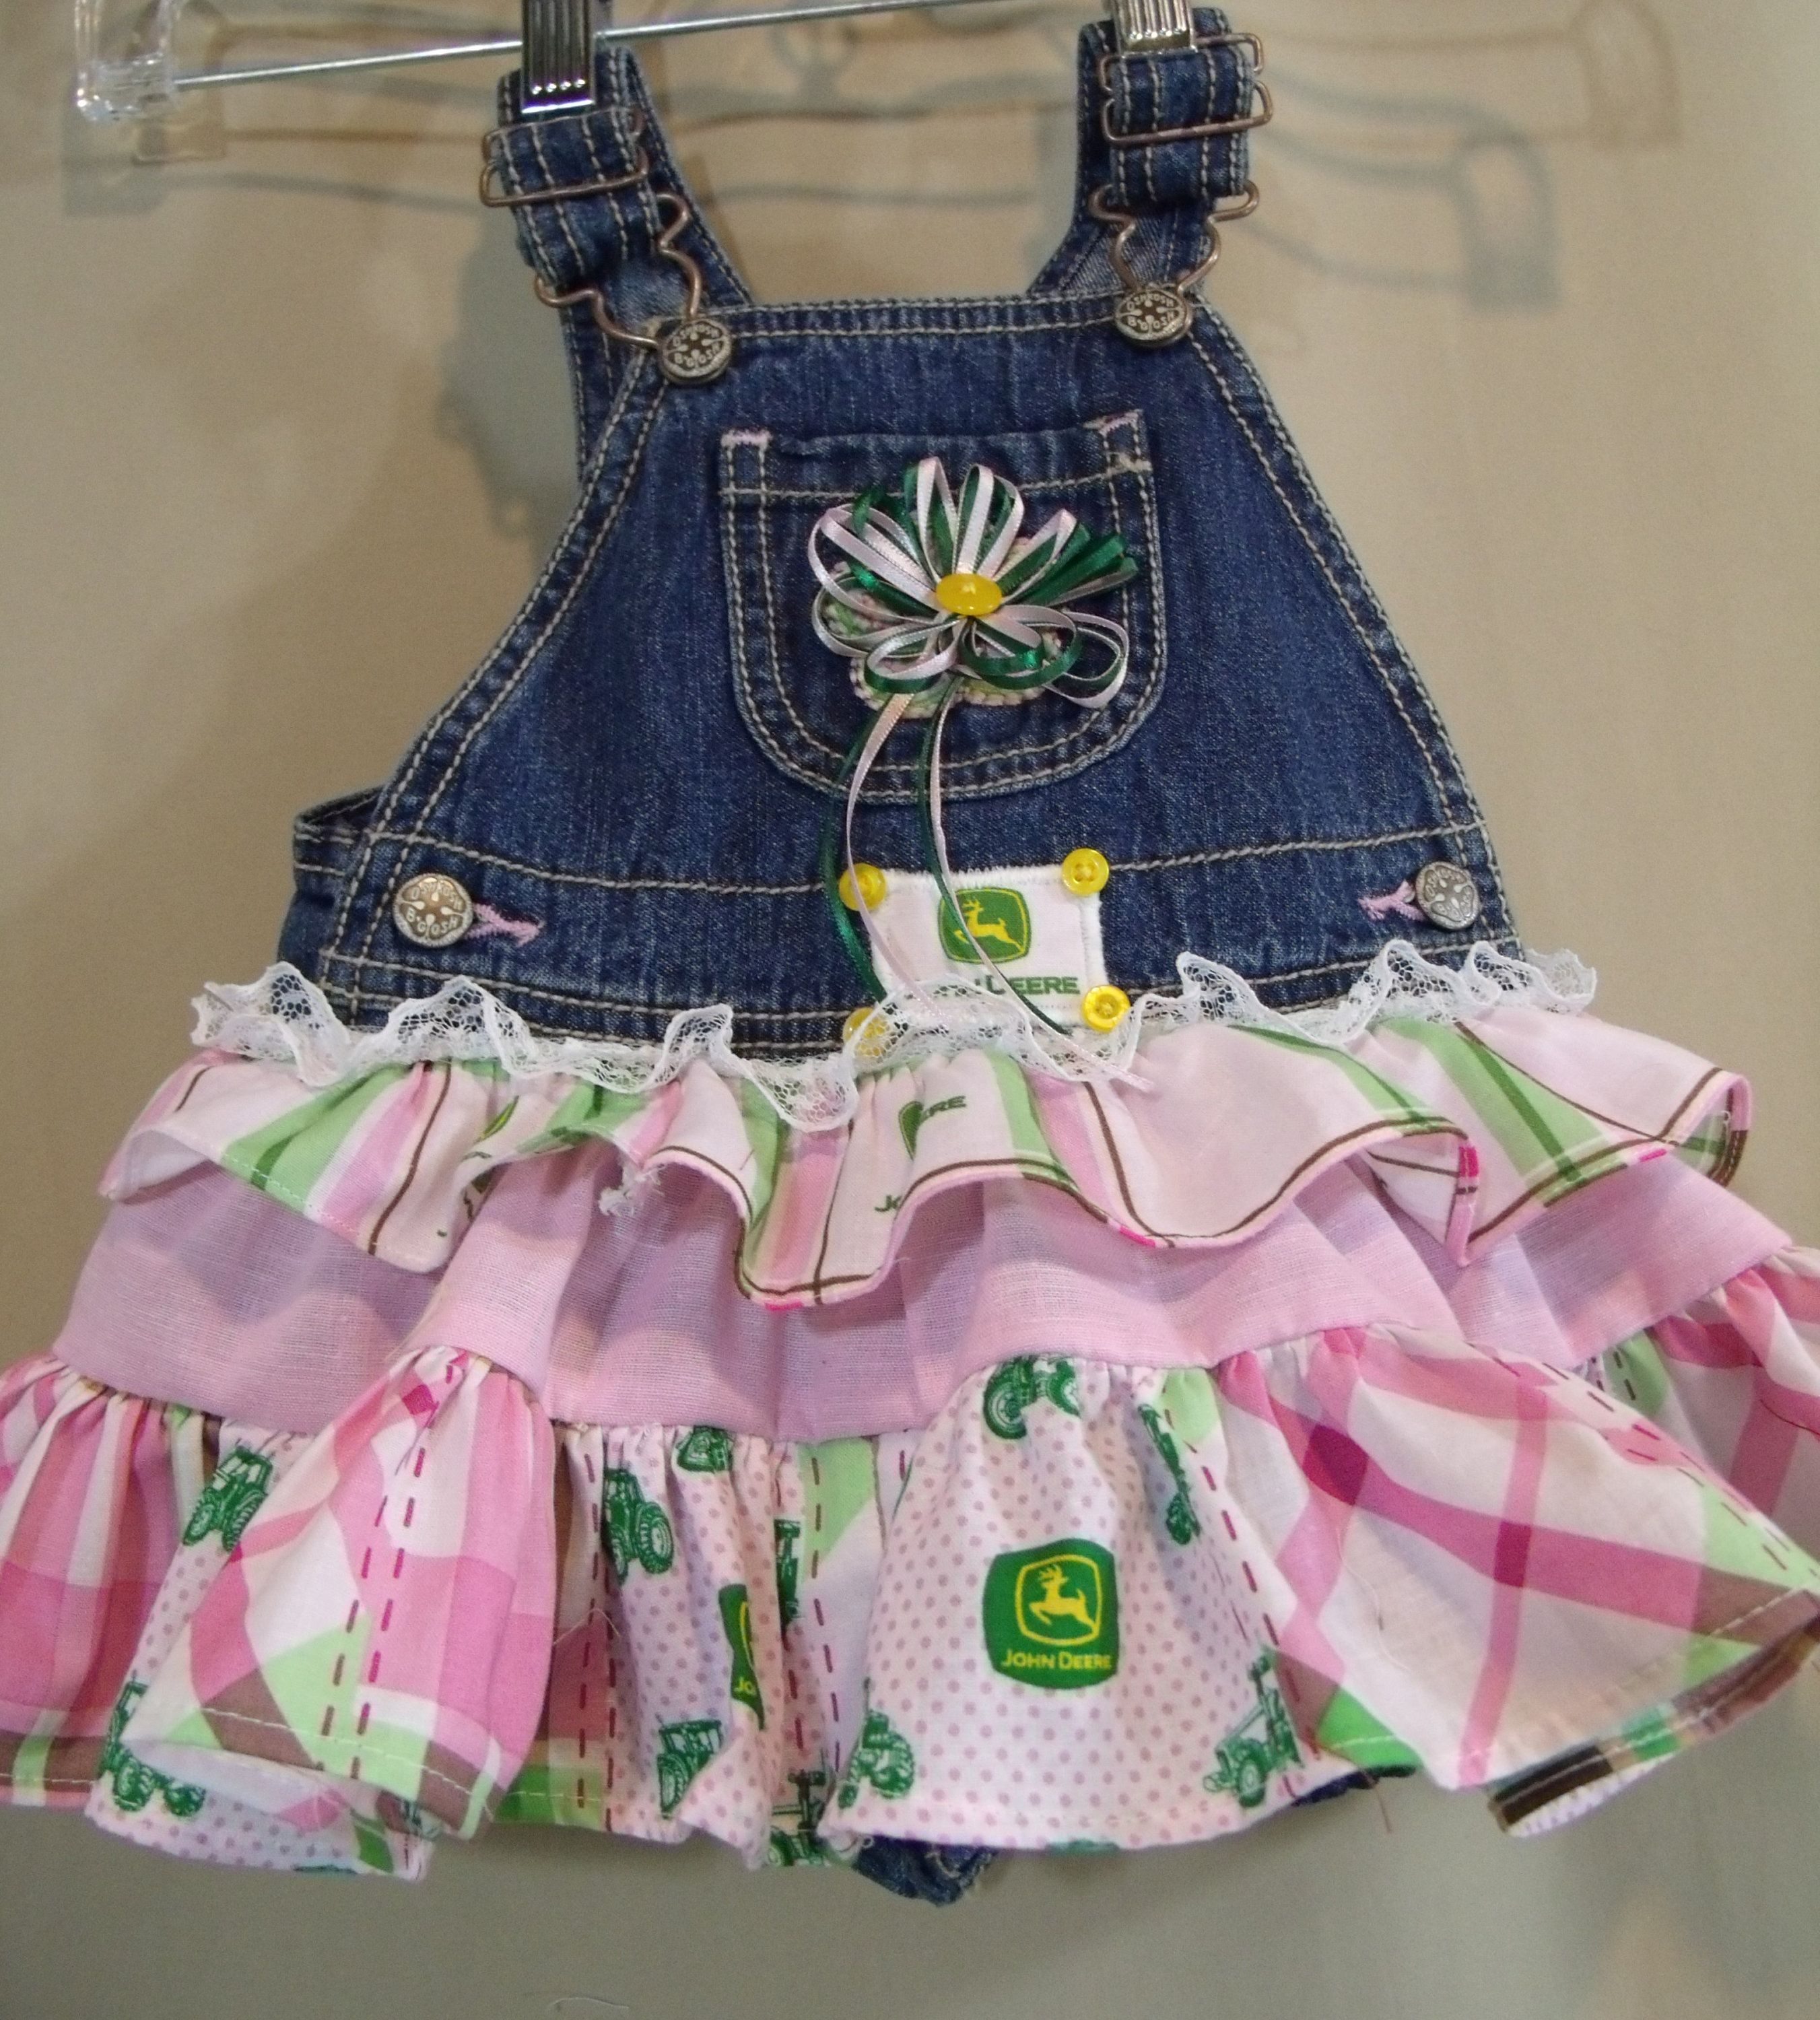 Pin on Infant clothes and more